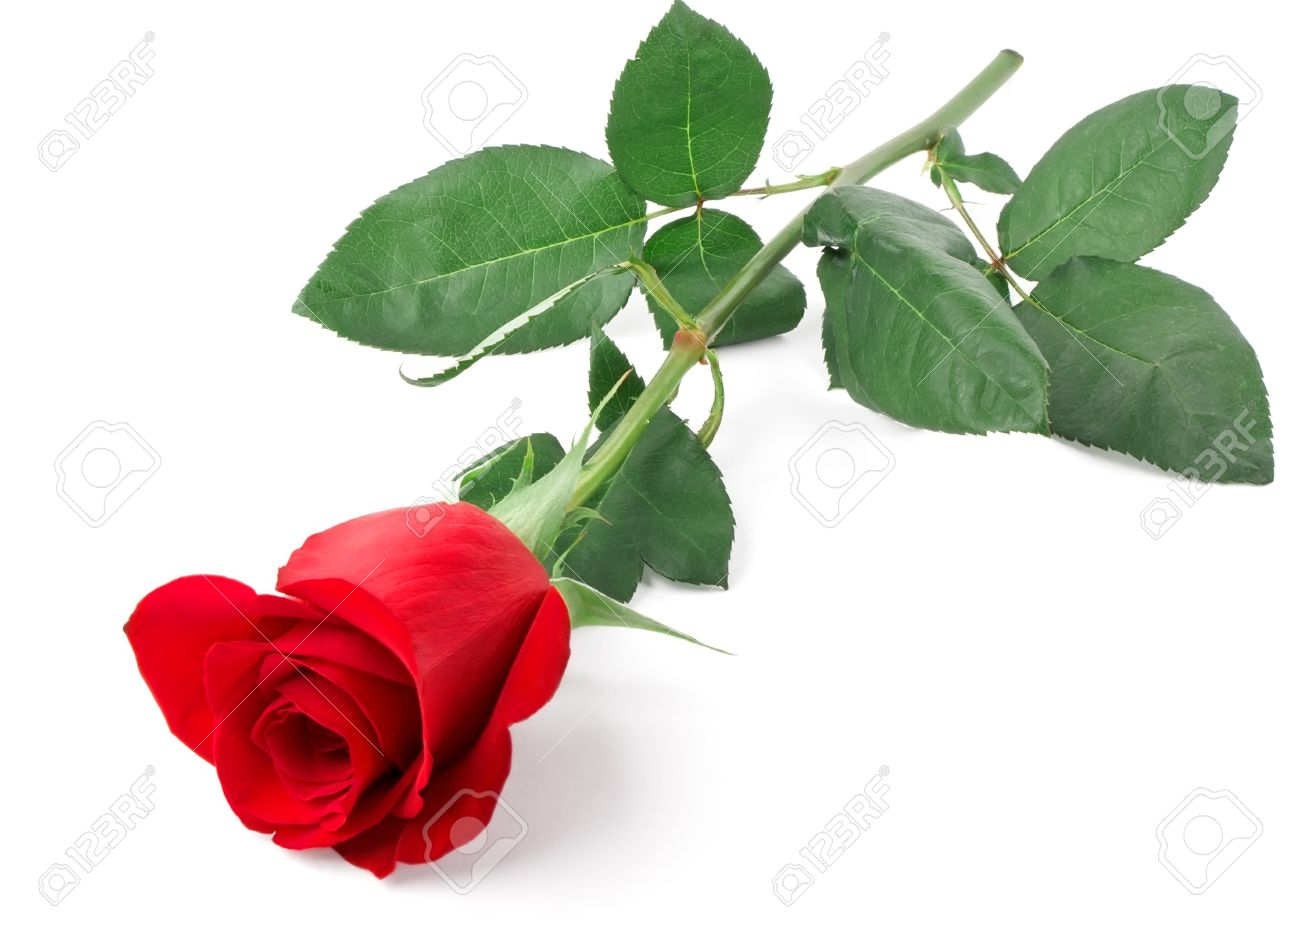 Branch of red rose isolated on white background Stock Photo - 10191558